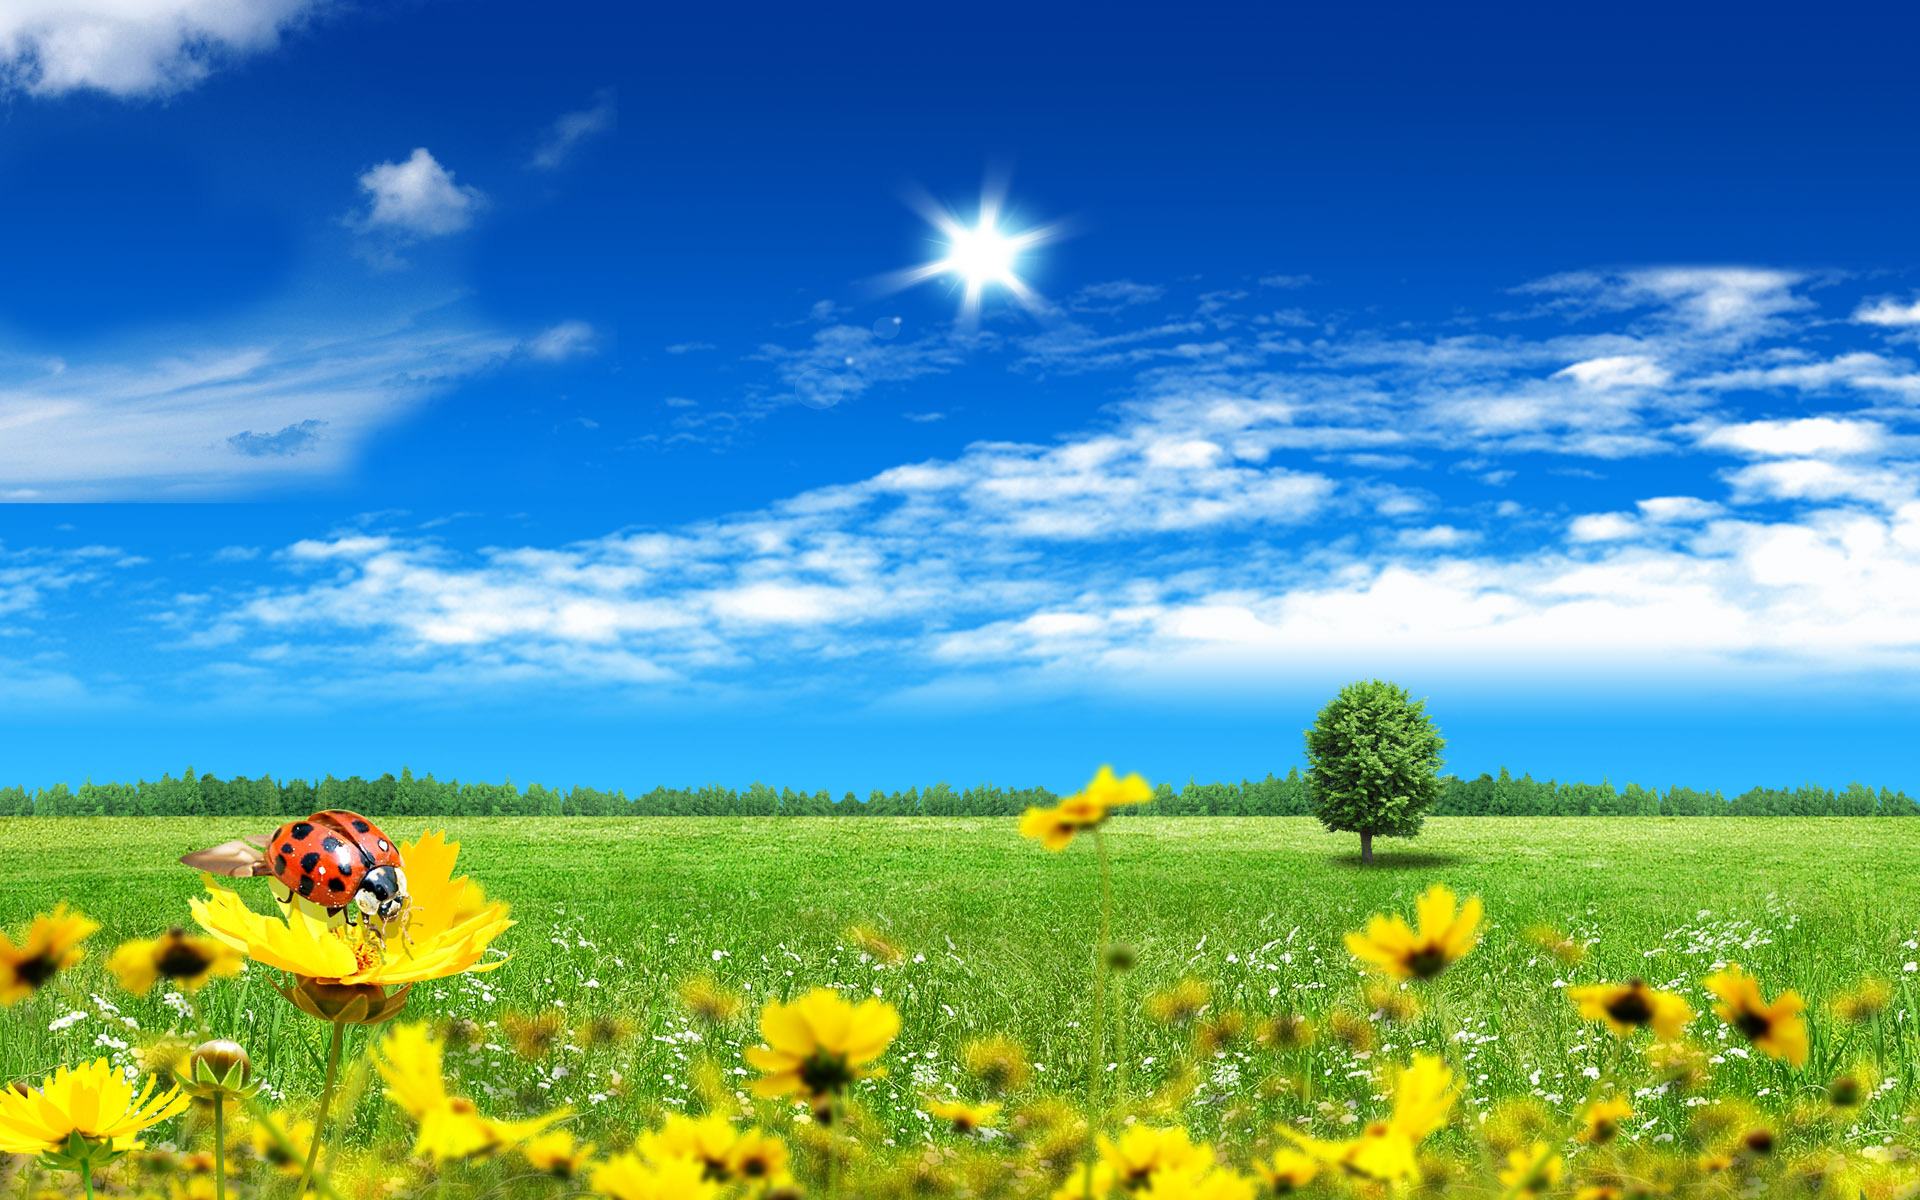 10438 download wallpaper Landscape, Insects, Ladybugs screensavers and pictures for free